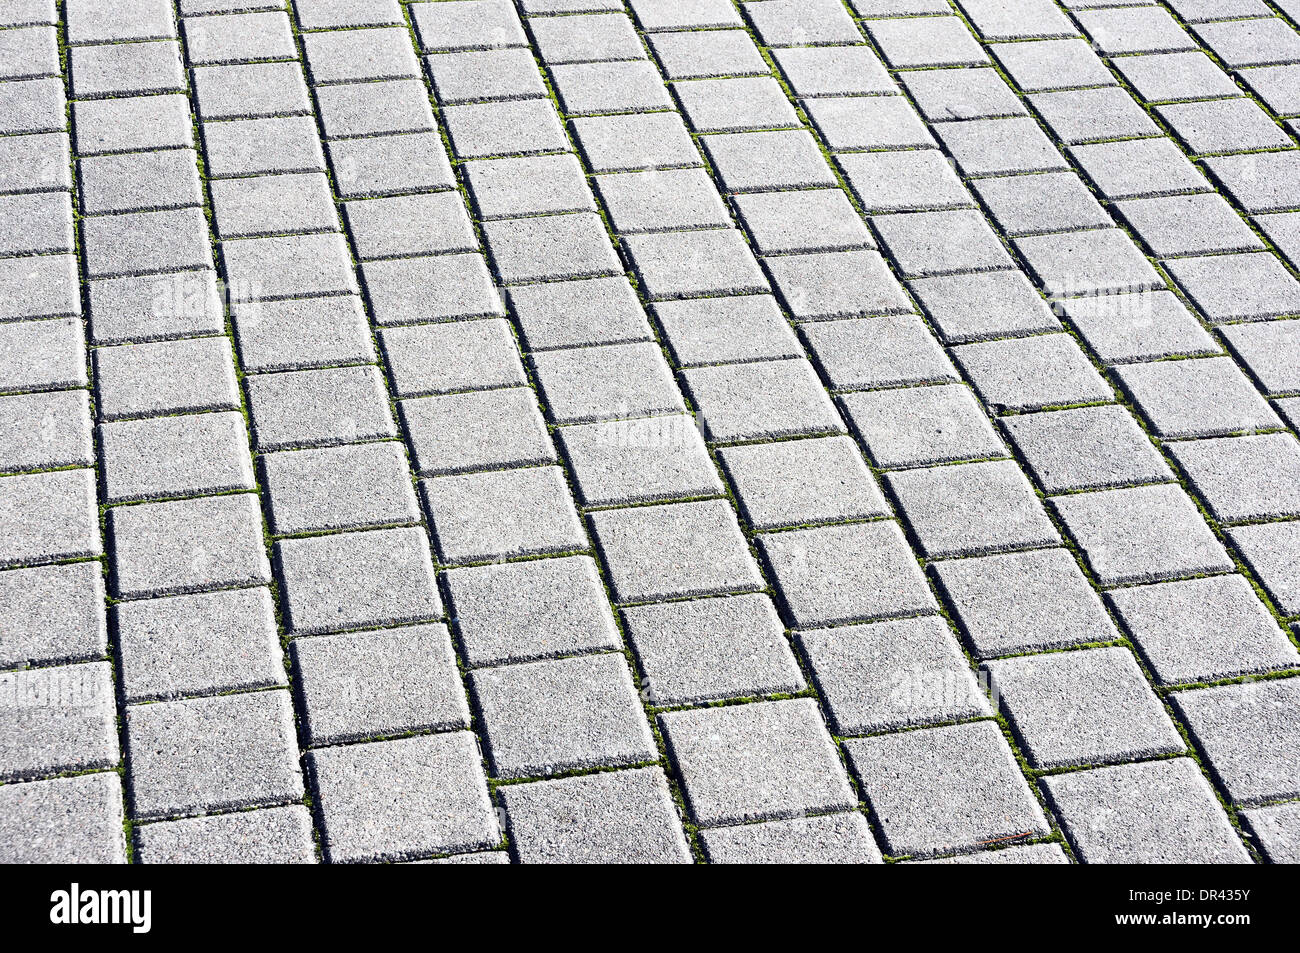 background with floor tiles of granite paving stones - Stock Image